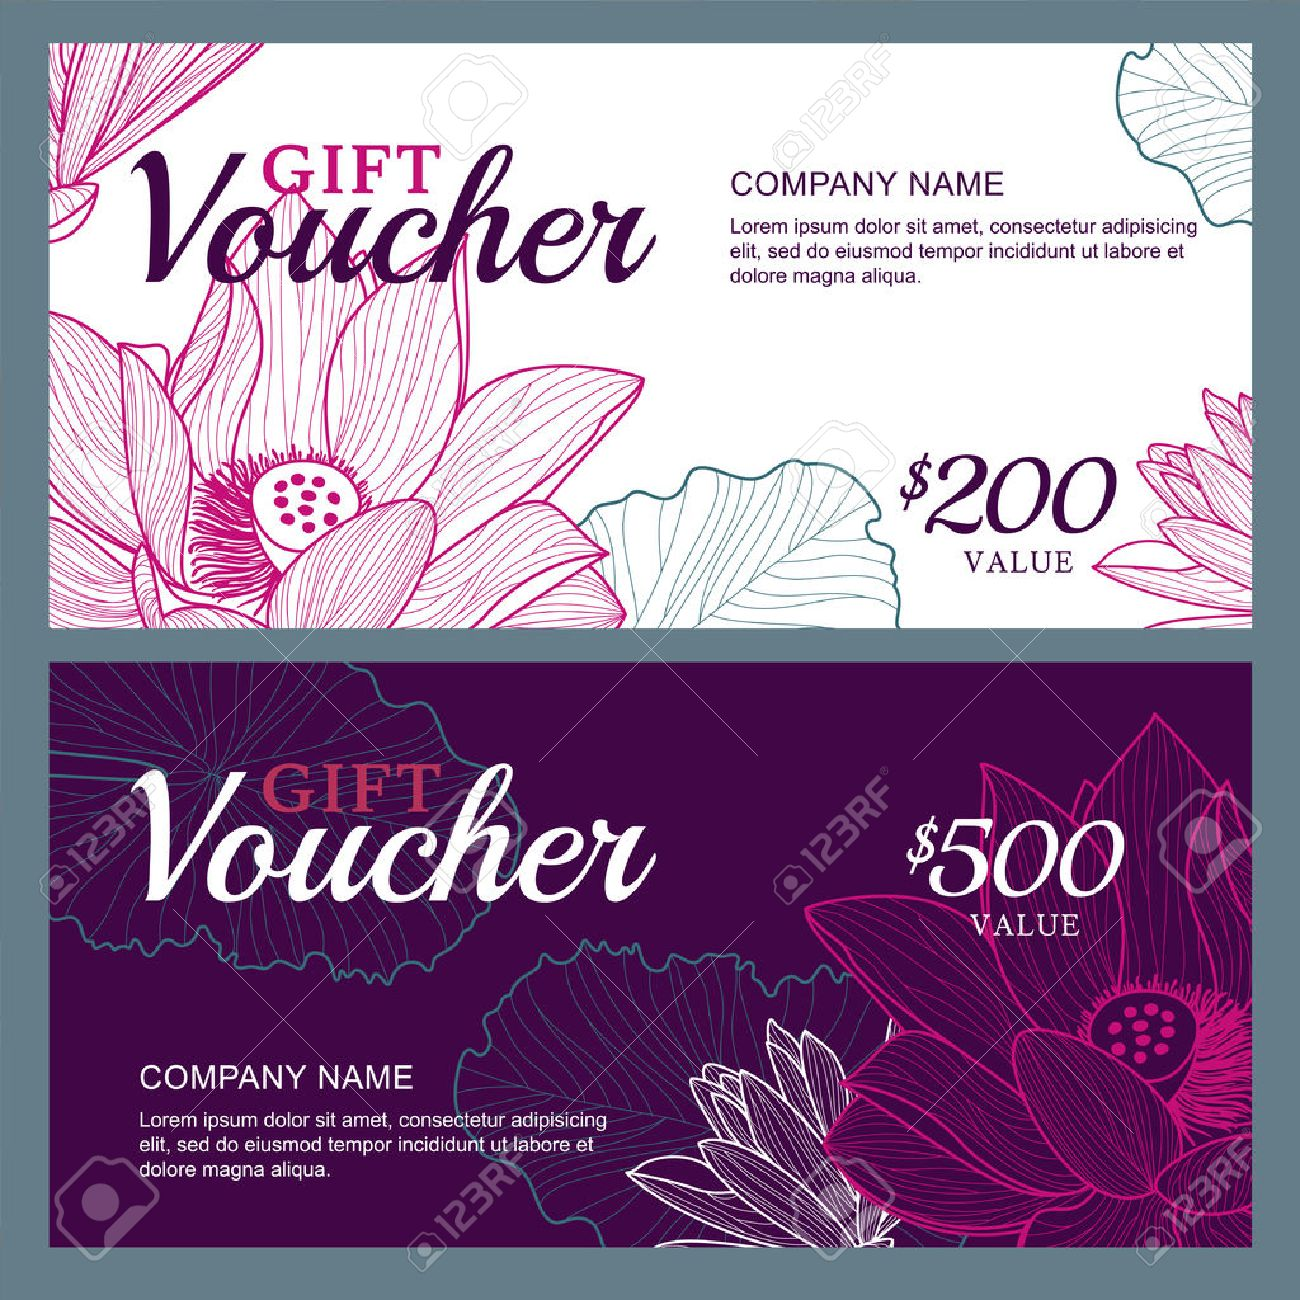 Vector gift voucher template with lotus, lily flowers. Business floral card template. Abstract background. Concept for boutique, jewelry, floral shop, beauty salon, spa, fashion, flyer, banner design. - 47876466